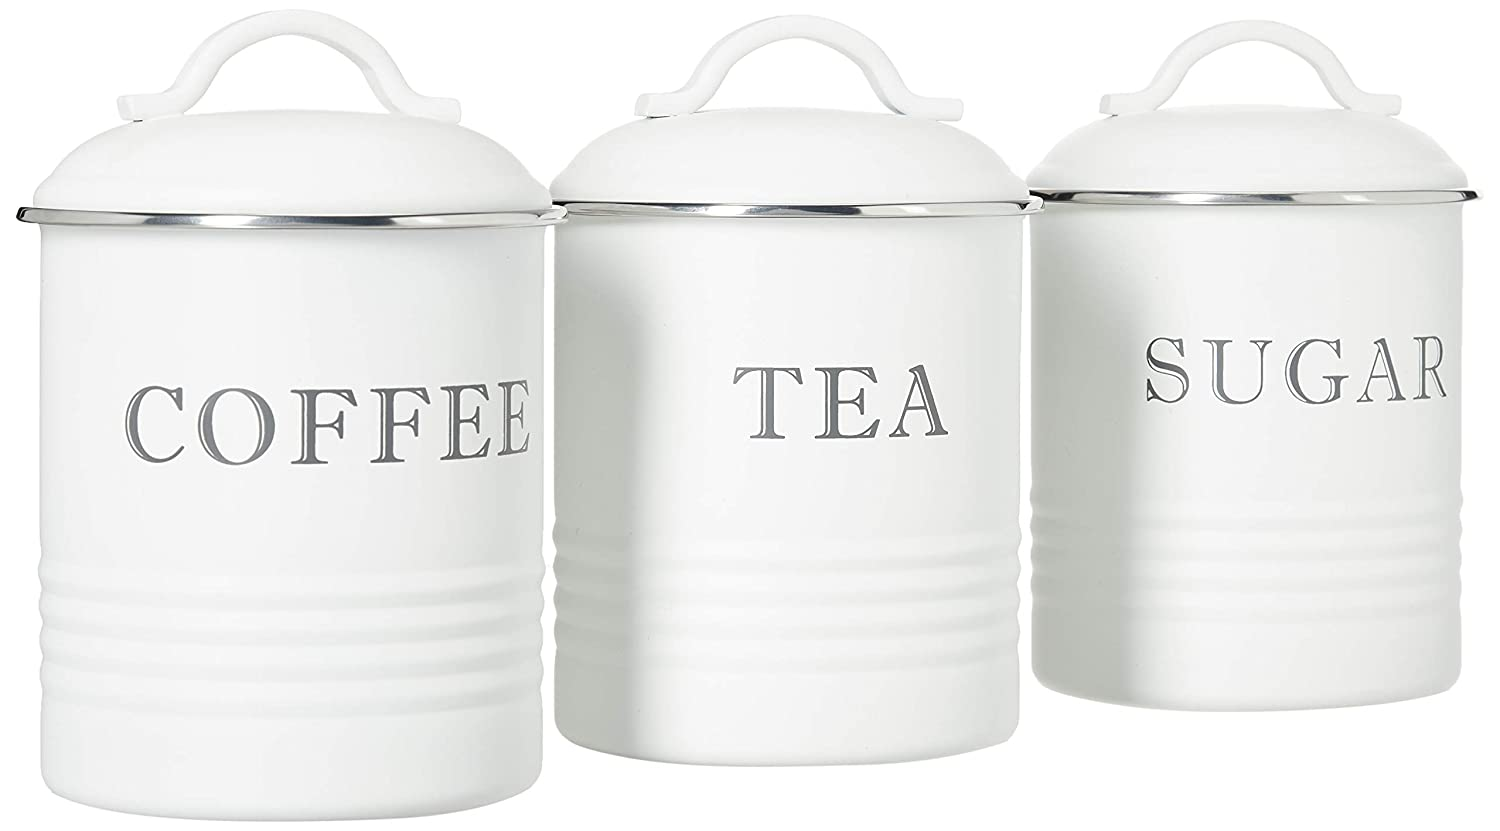 Set of 3 Barnyard Designs Decorative Kitchen Canisters with Lids White Metal Rustic Vintage Farmhouse Country Decor for Sugar Coffee Tea Storage